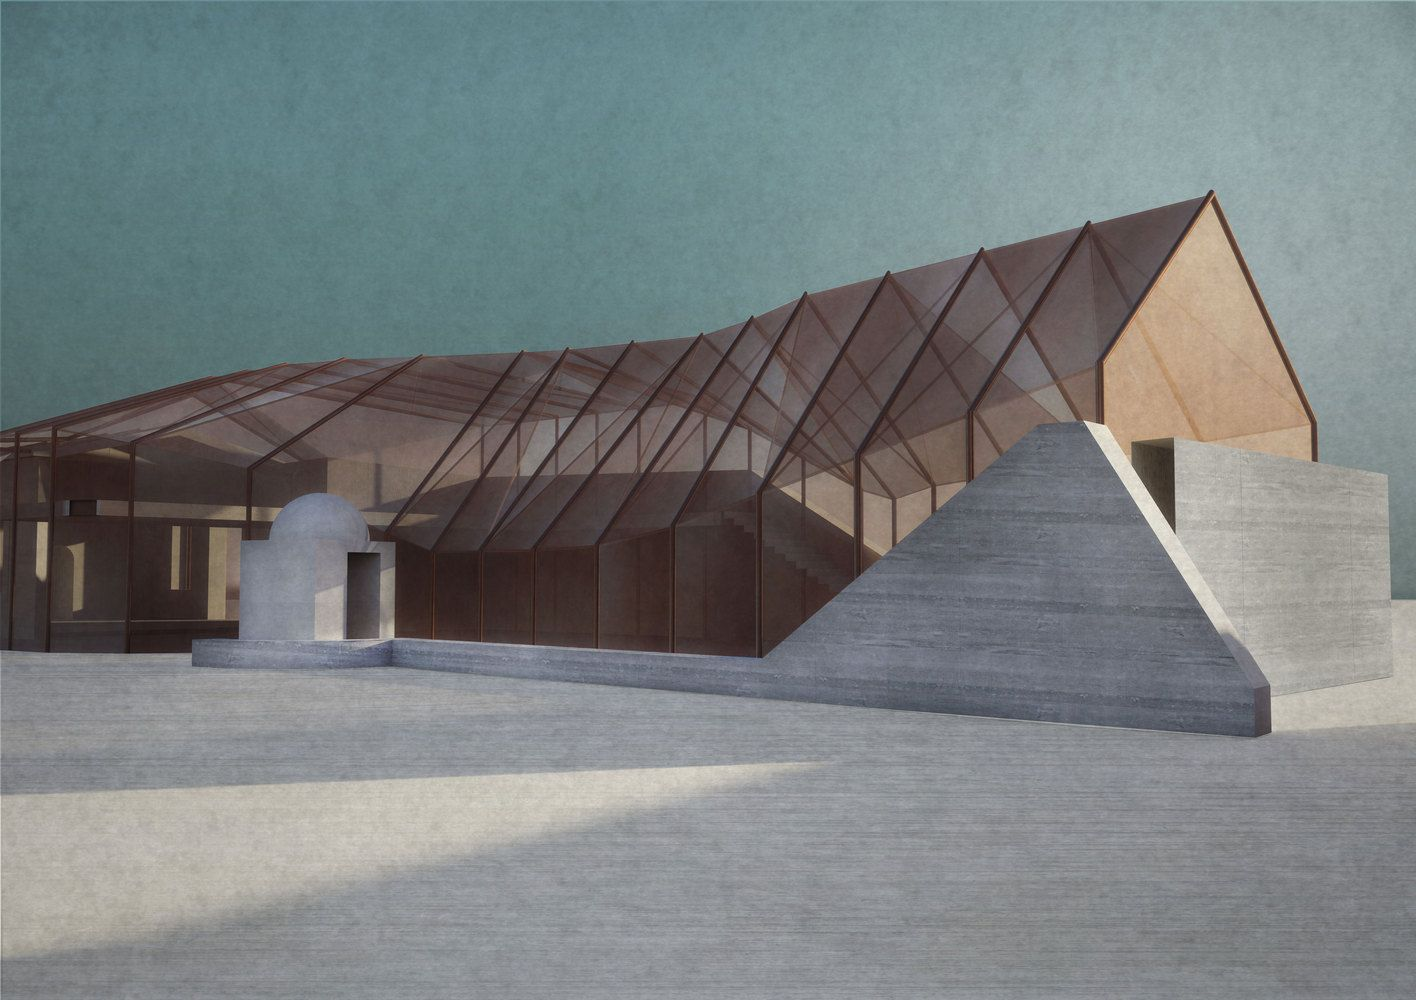 Gallery Of Re Designs Copper Colored Concrete Extension To Cyprus College Of Art 3 Concept Architecture Architecture Architecture Design